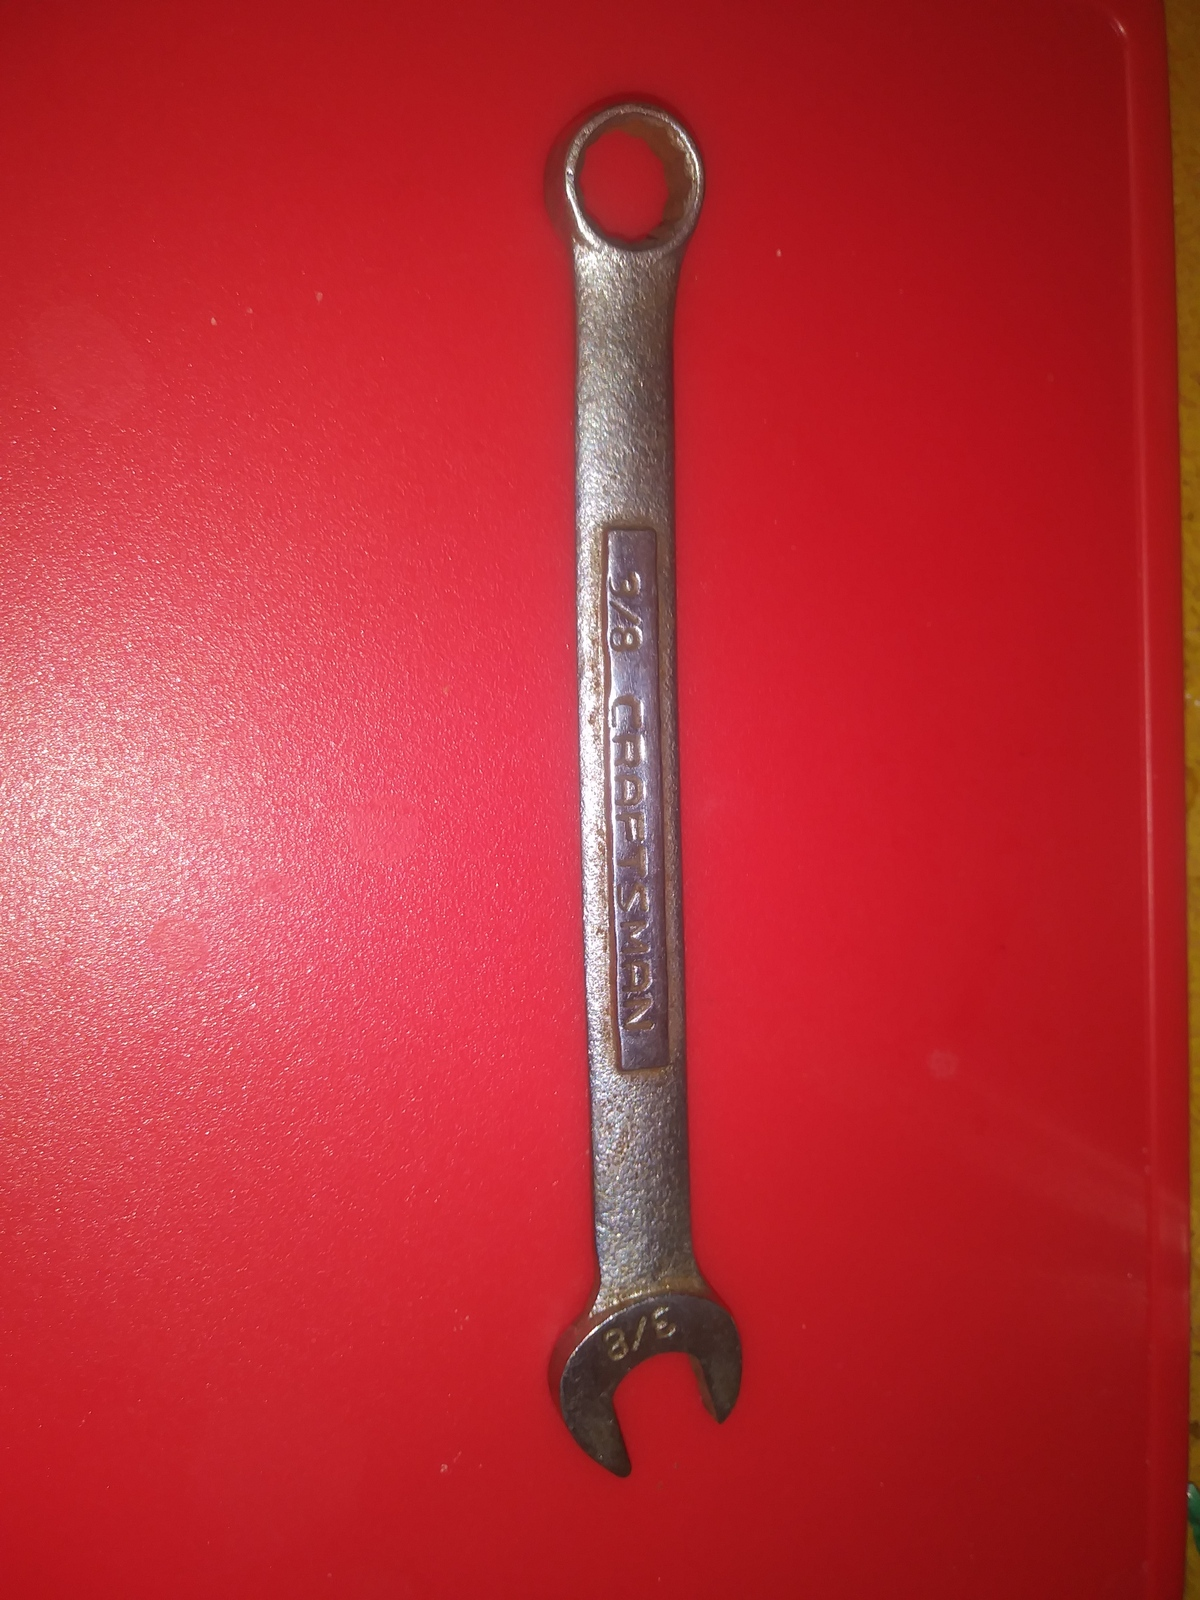 Primary image for 3/8 Craftsman Wrench